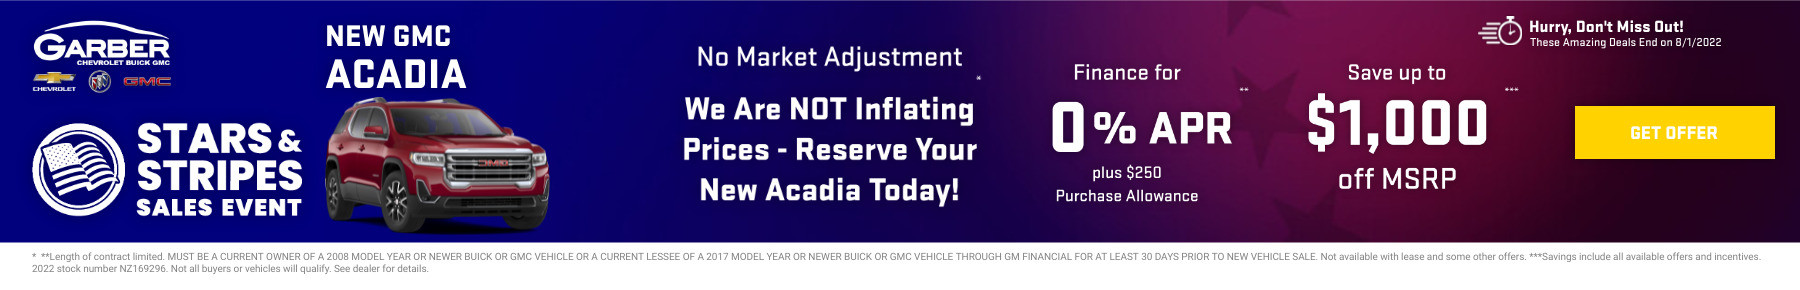 New GMC Acadia Current Deals and Offers in Orange Park, FL